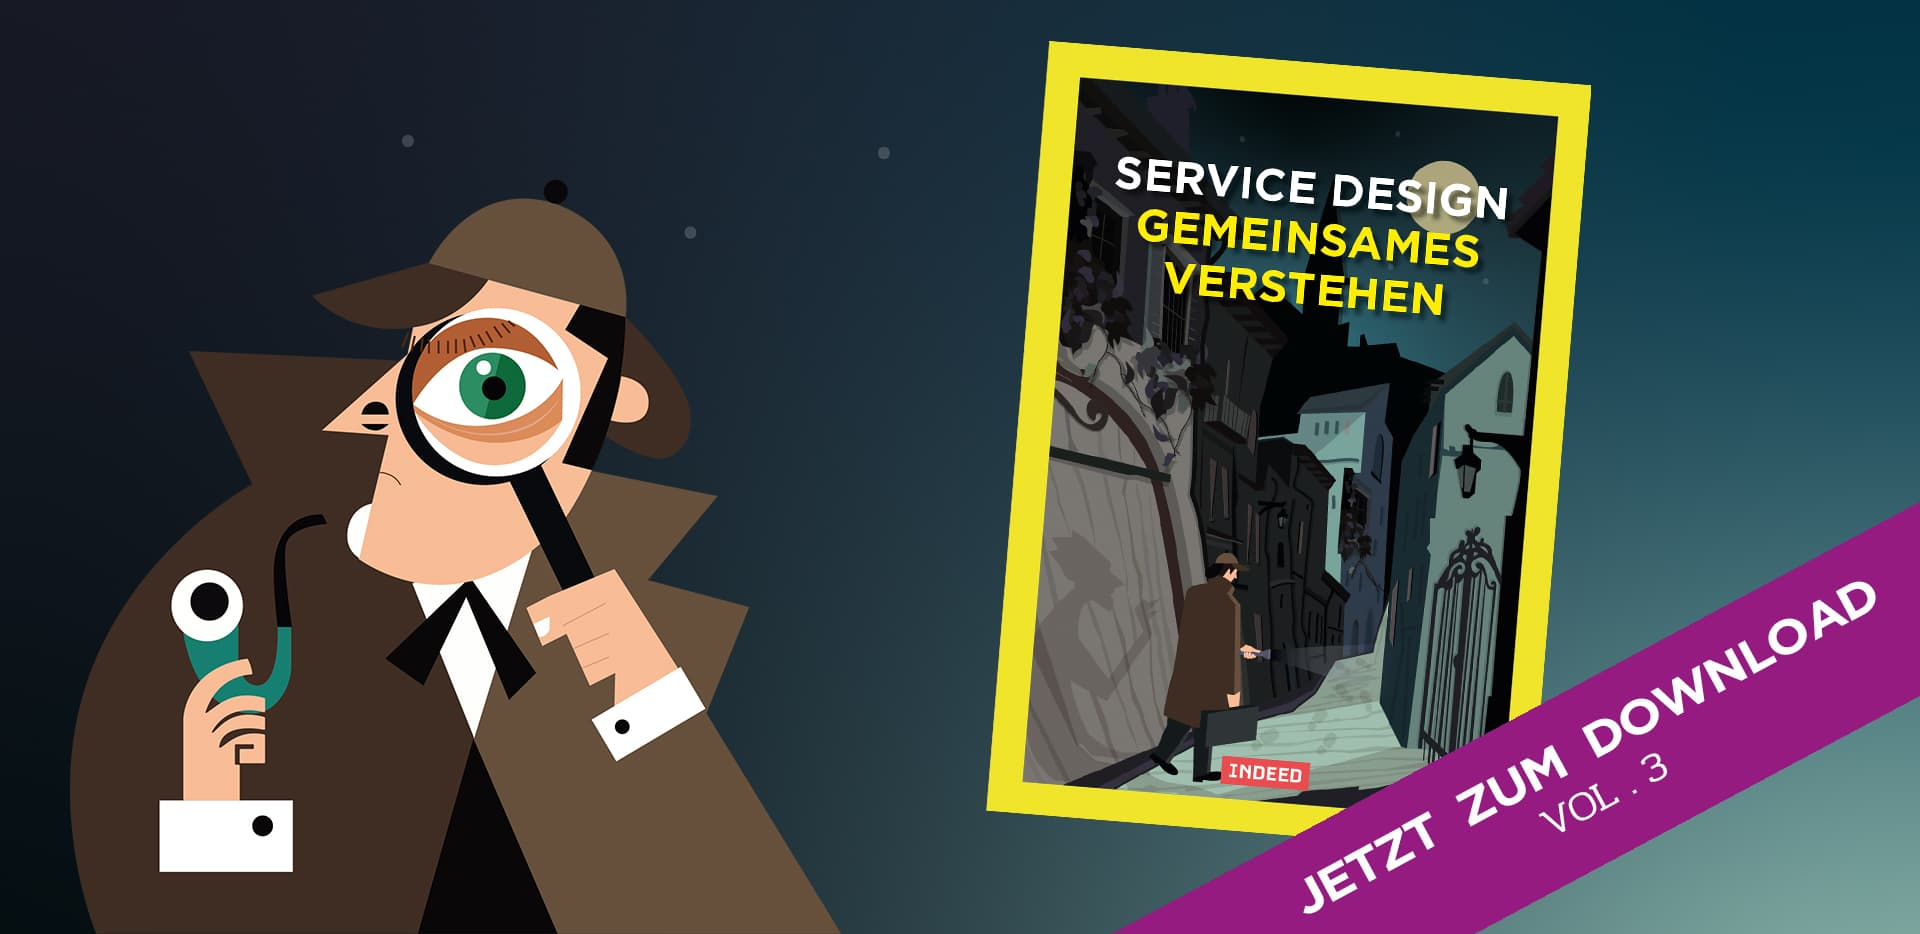 Service Design Whitepaper Vol. 3 jetzt zum Download